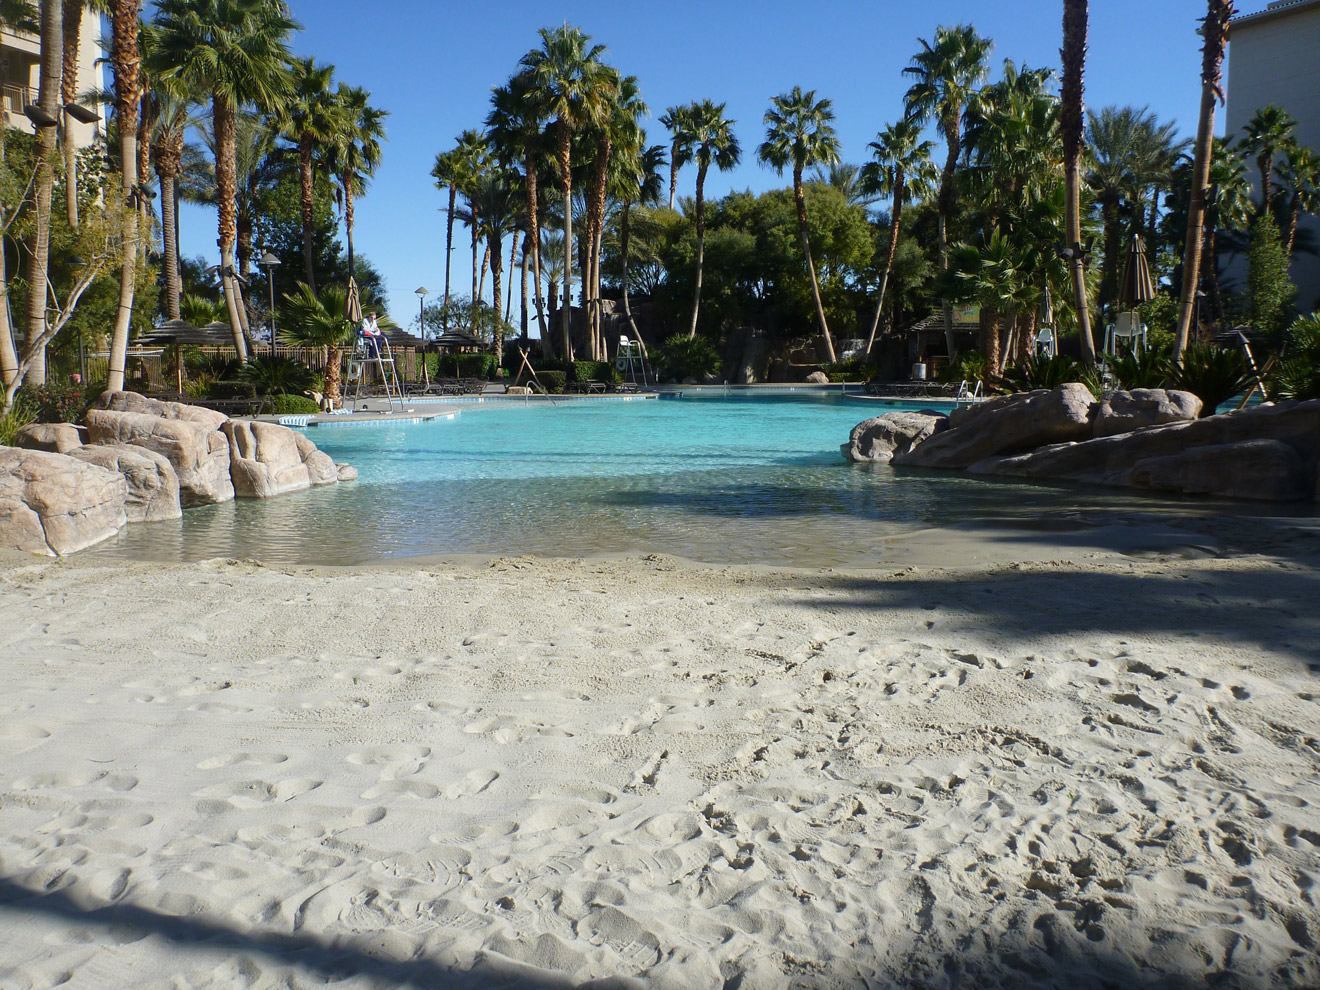 Tahiti Village Pool Is One Of The Best Family Pools In Las Vegas